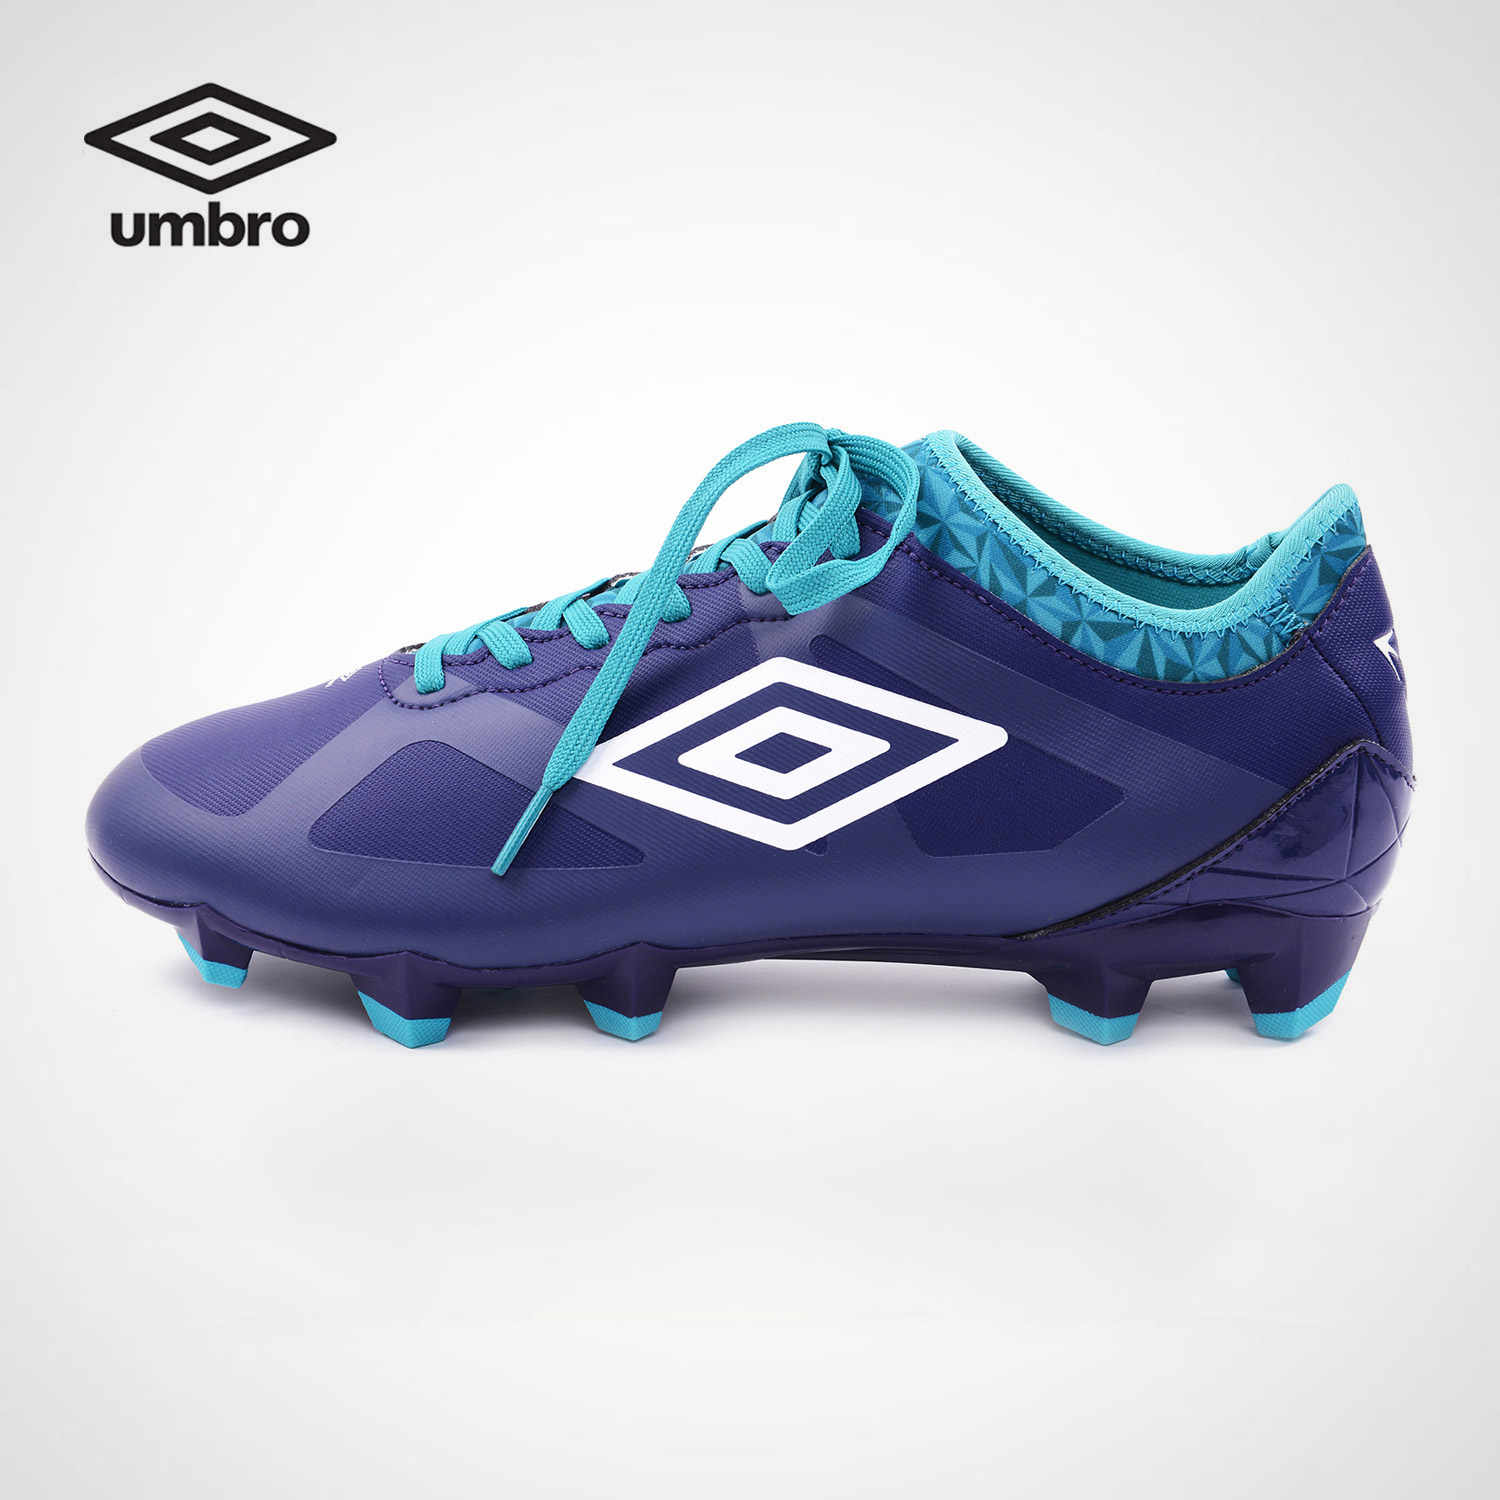 39331814806 Umbro Men s SexeMare Professional Soccer Cleats 2017 Newest Mens FG  Football Boots Soccer Shoes Ucc90153